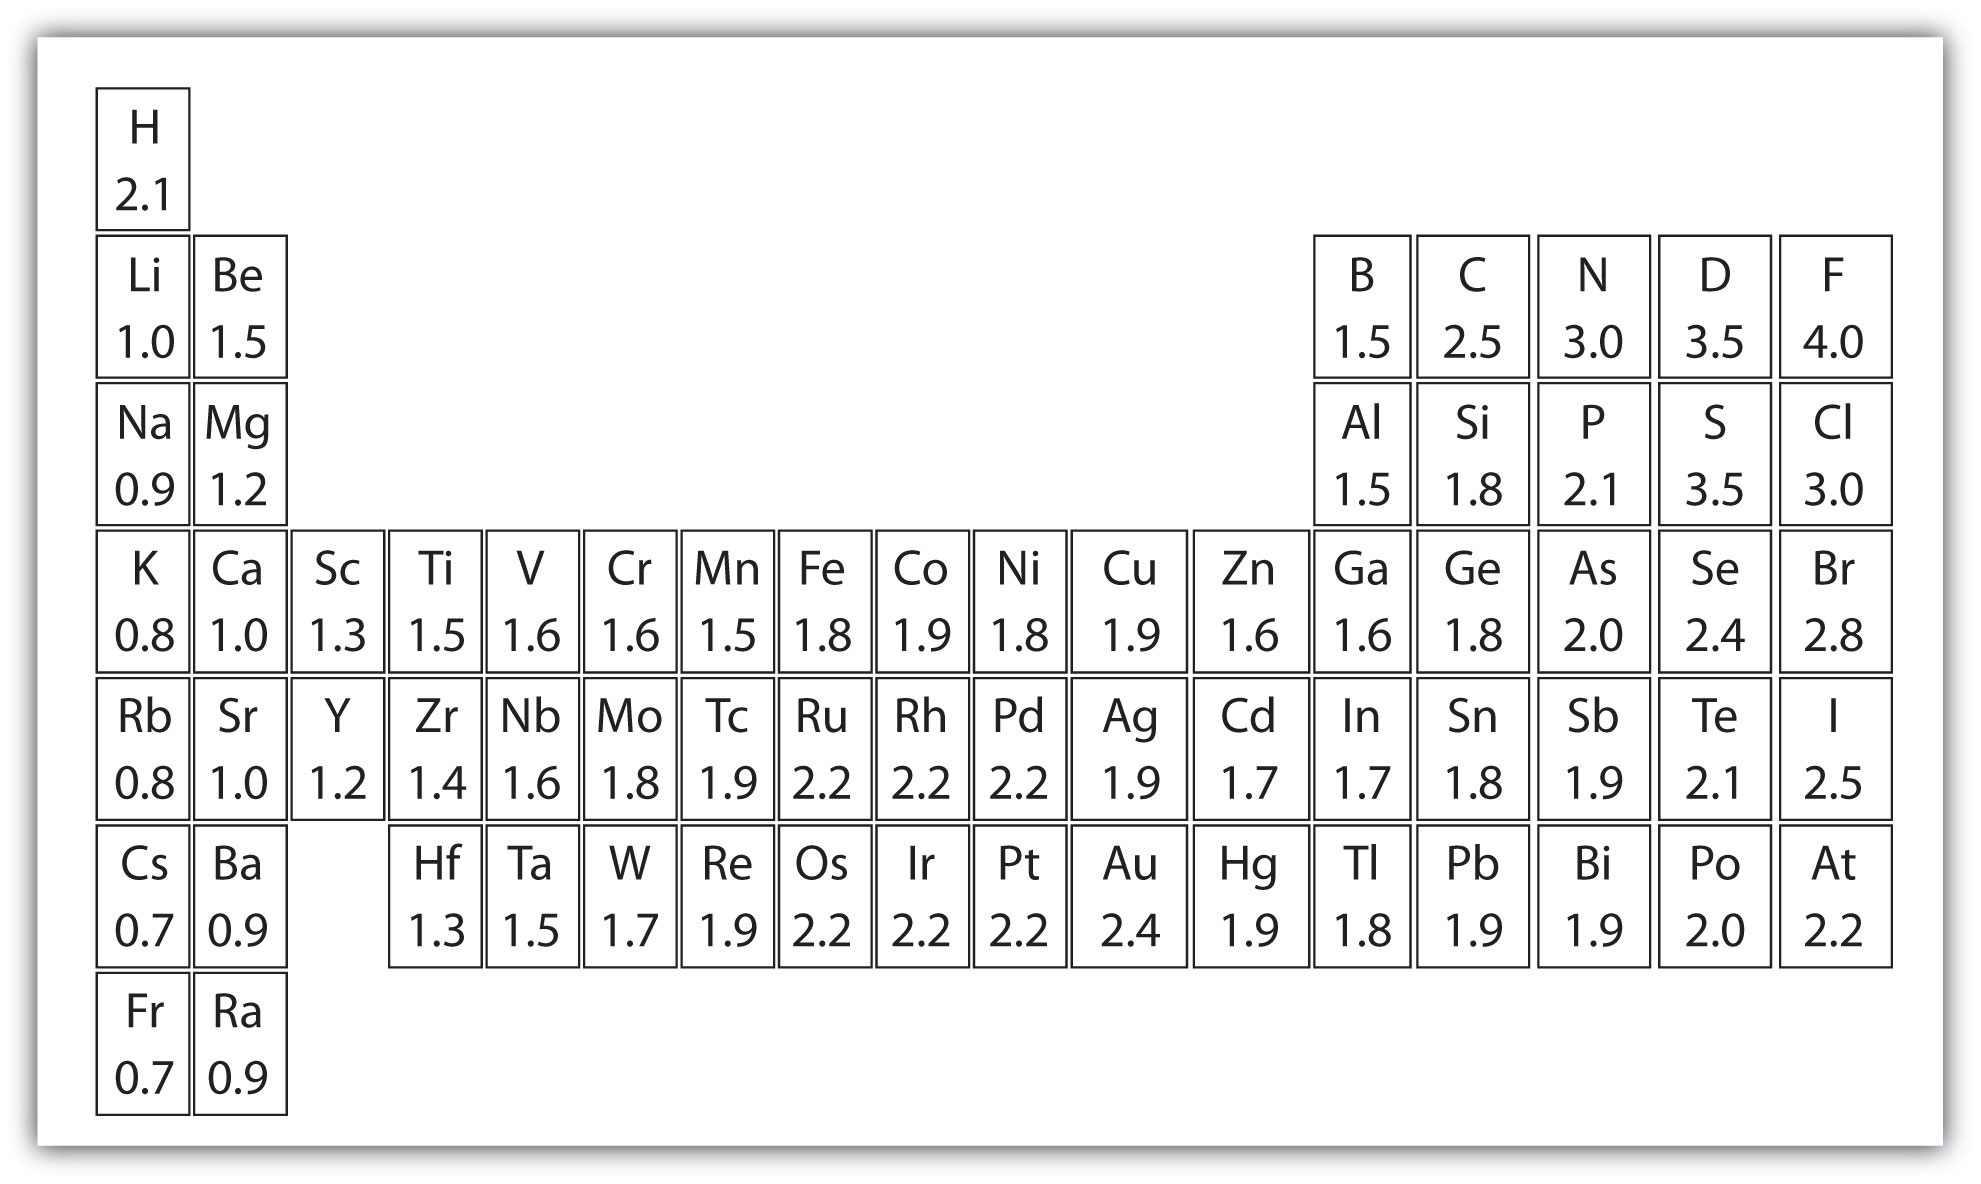 printable periodic table with atomic mass - Dynamic Periodic Table App